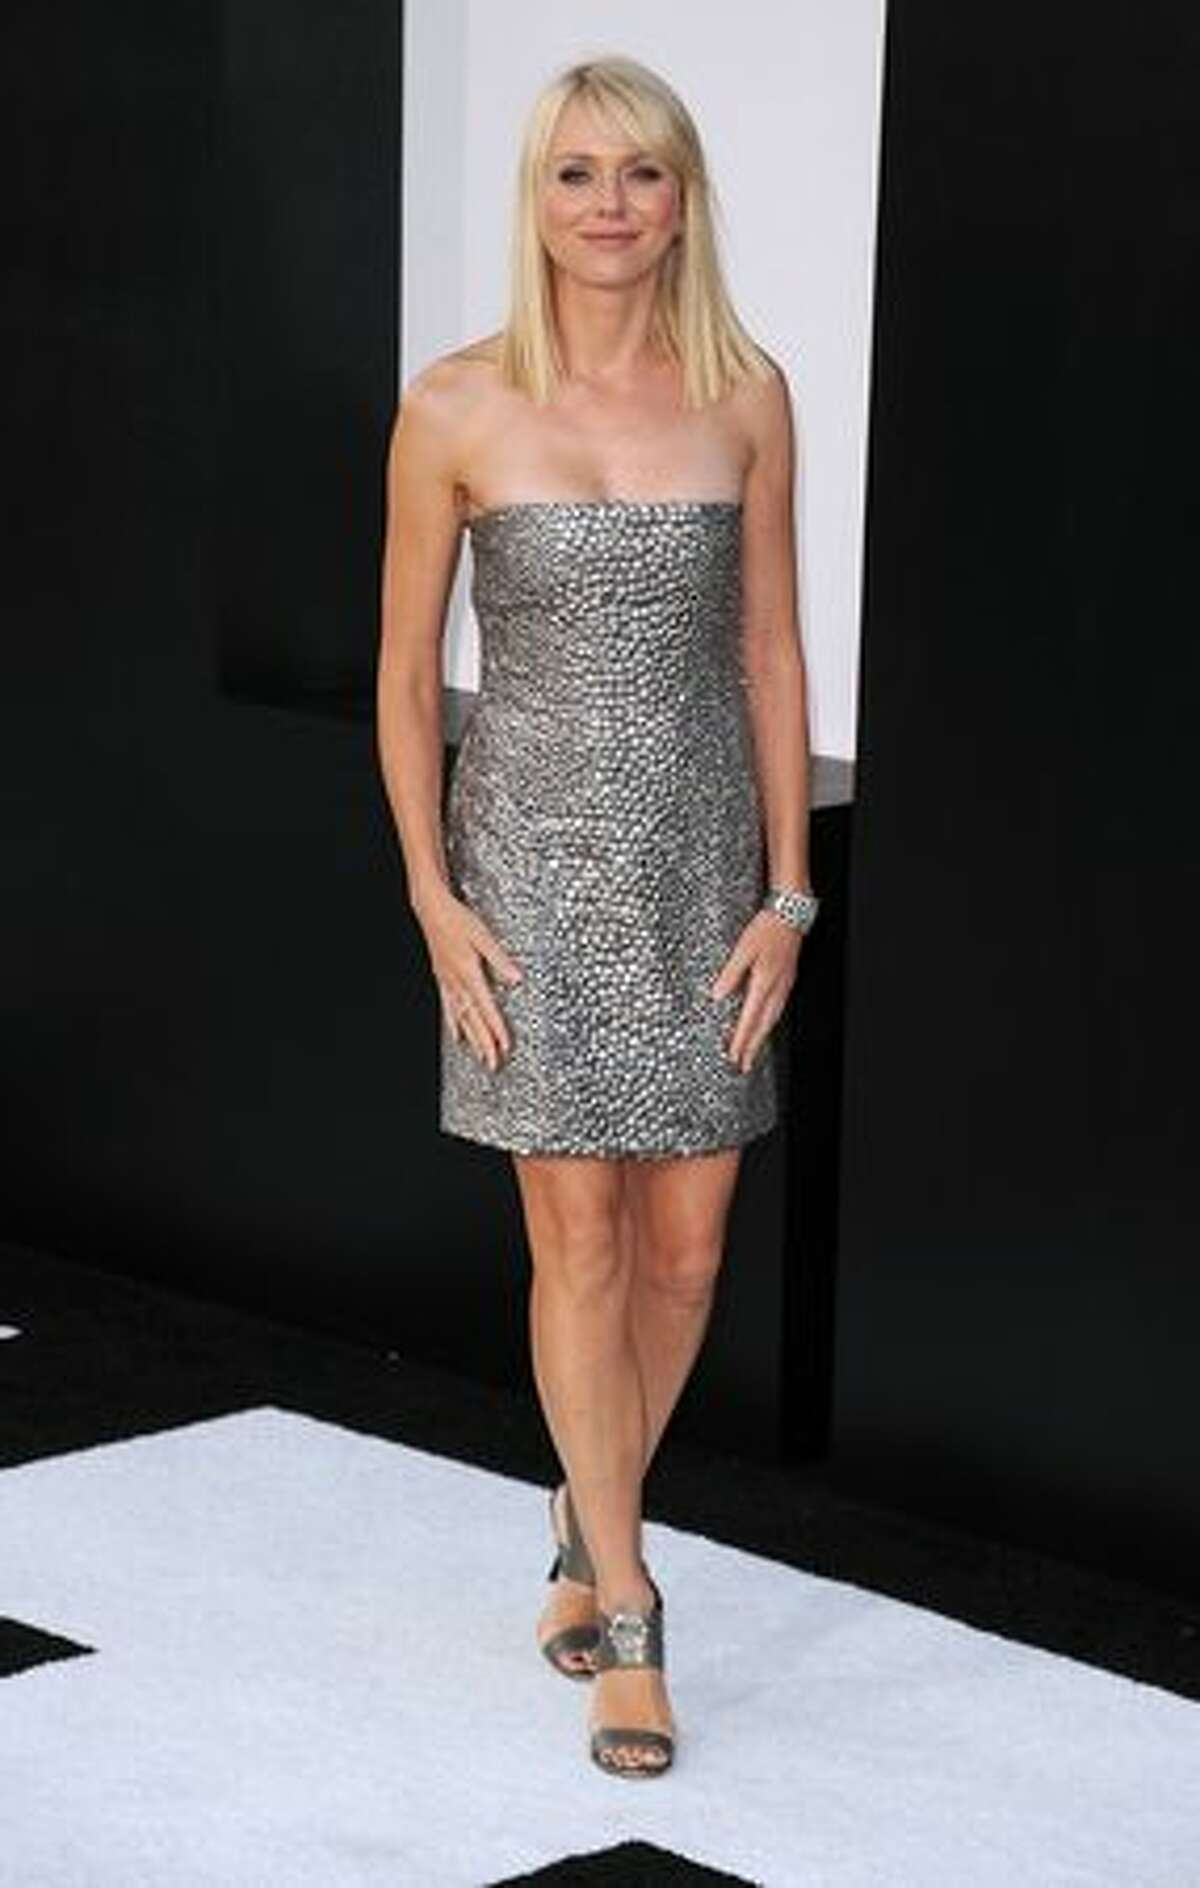 Actress Naomi Watts arrives at the premiere of